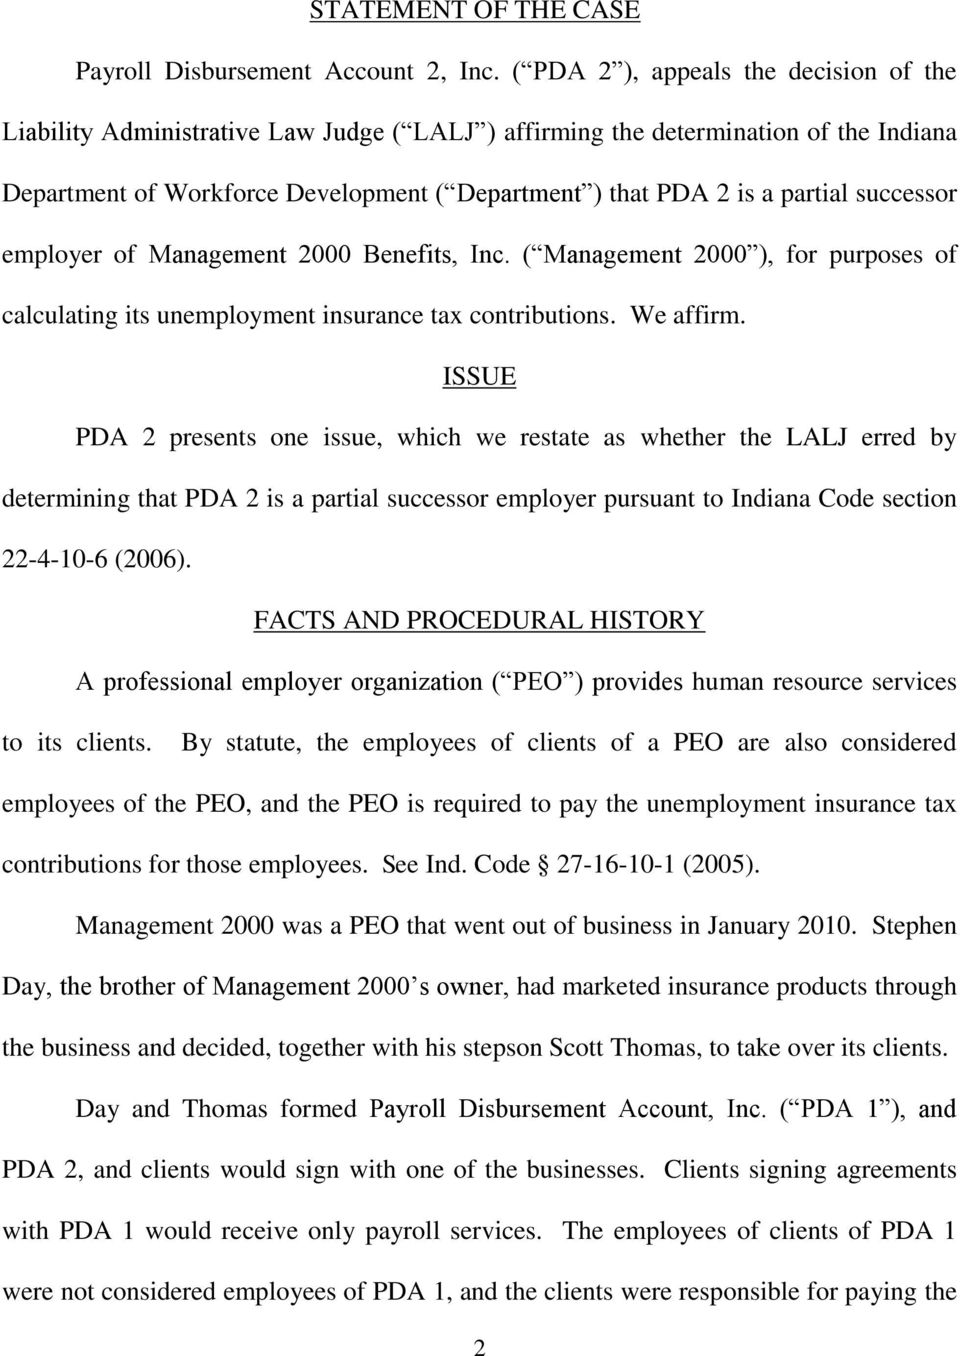 partial successor employer of Management 2000 Benefits, Inc. ( Management 2000 ), for purposes of calculating its unemployment insurance tax contributions. We affirm.